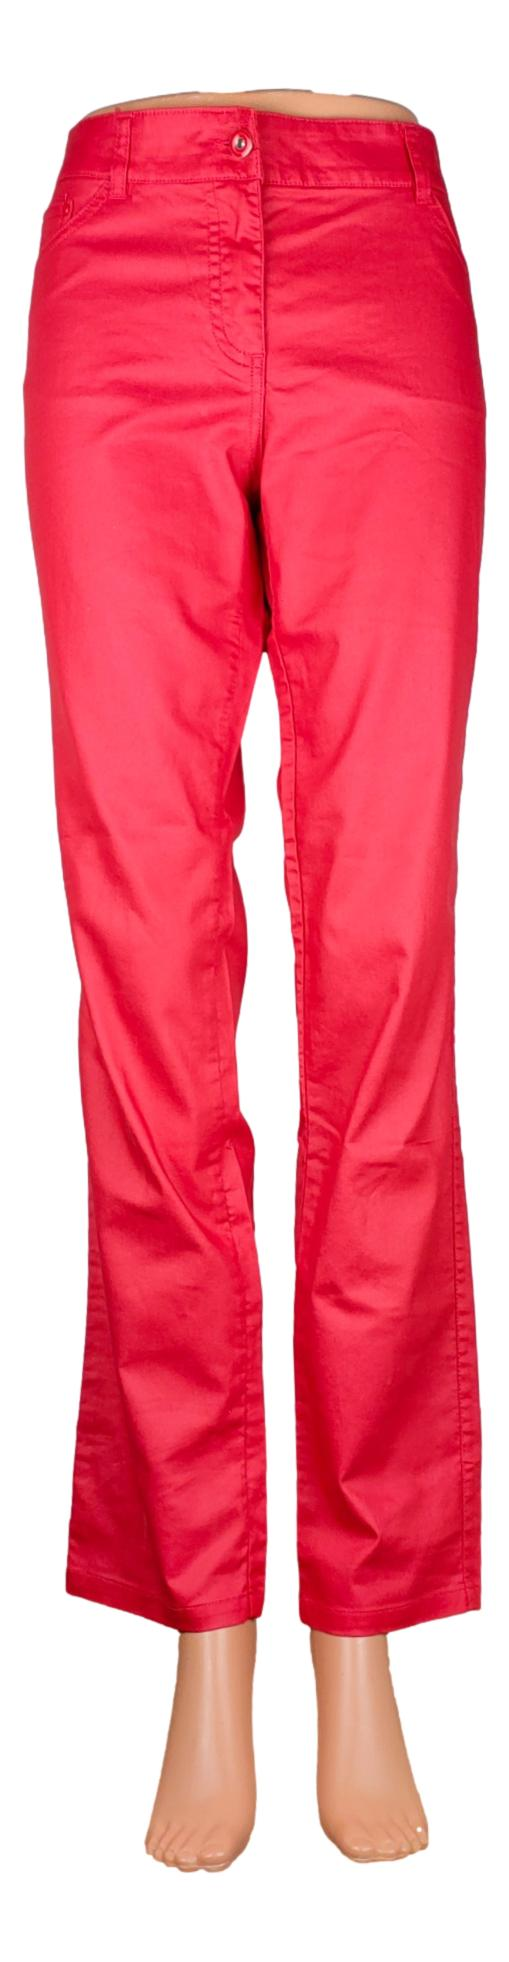 Pantalon In Extenso -Taille 42